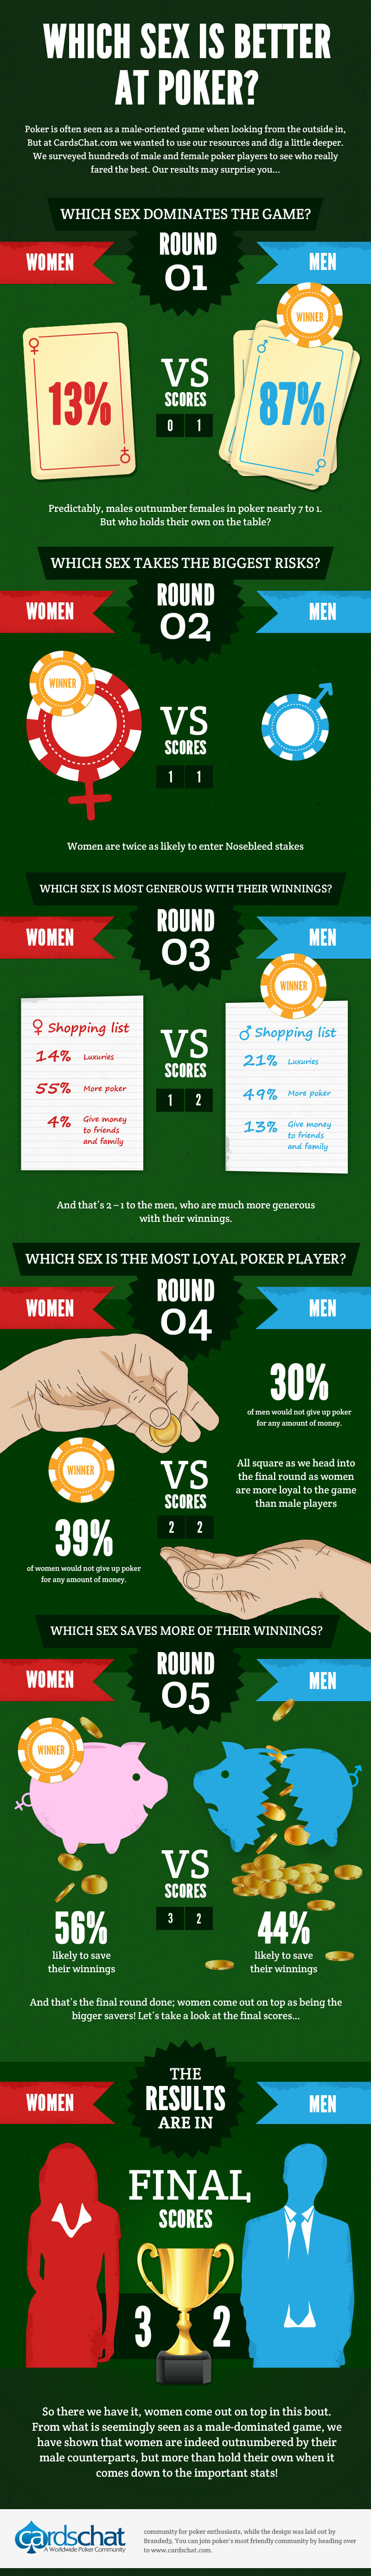 Men Vs Women on poker table